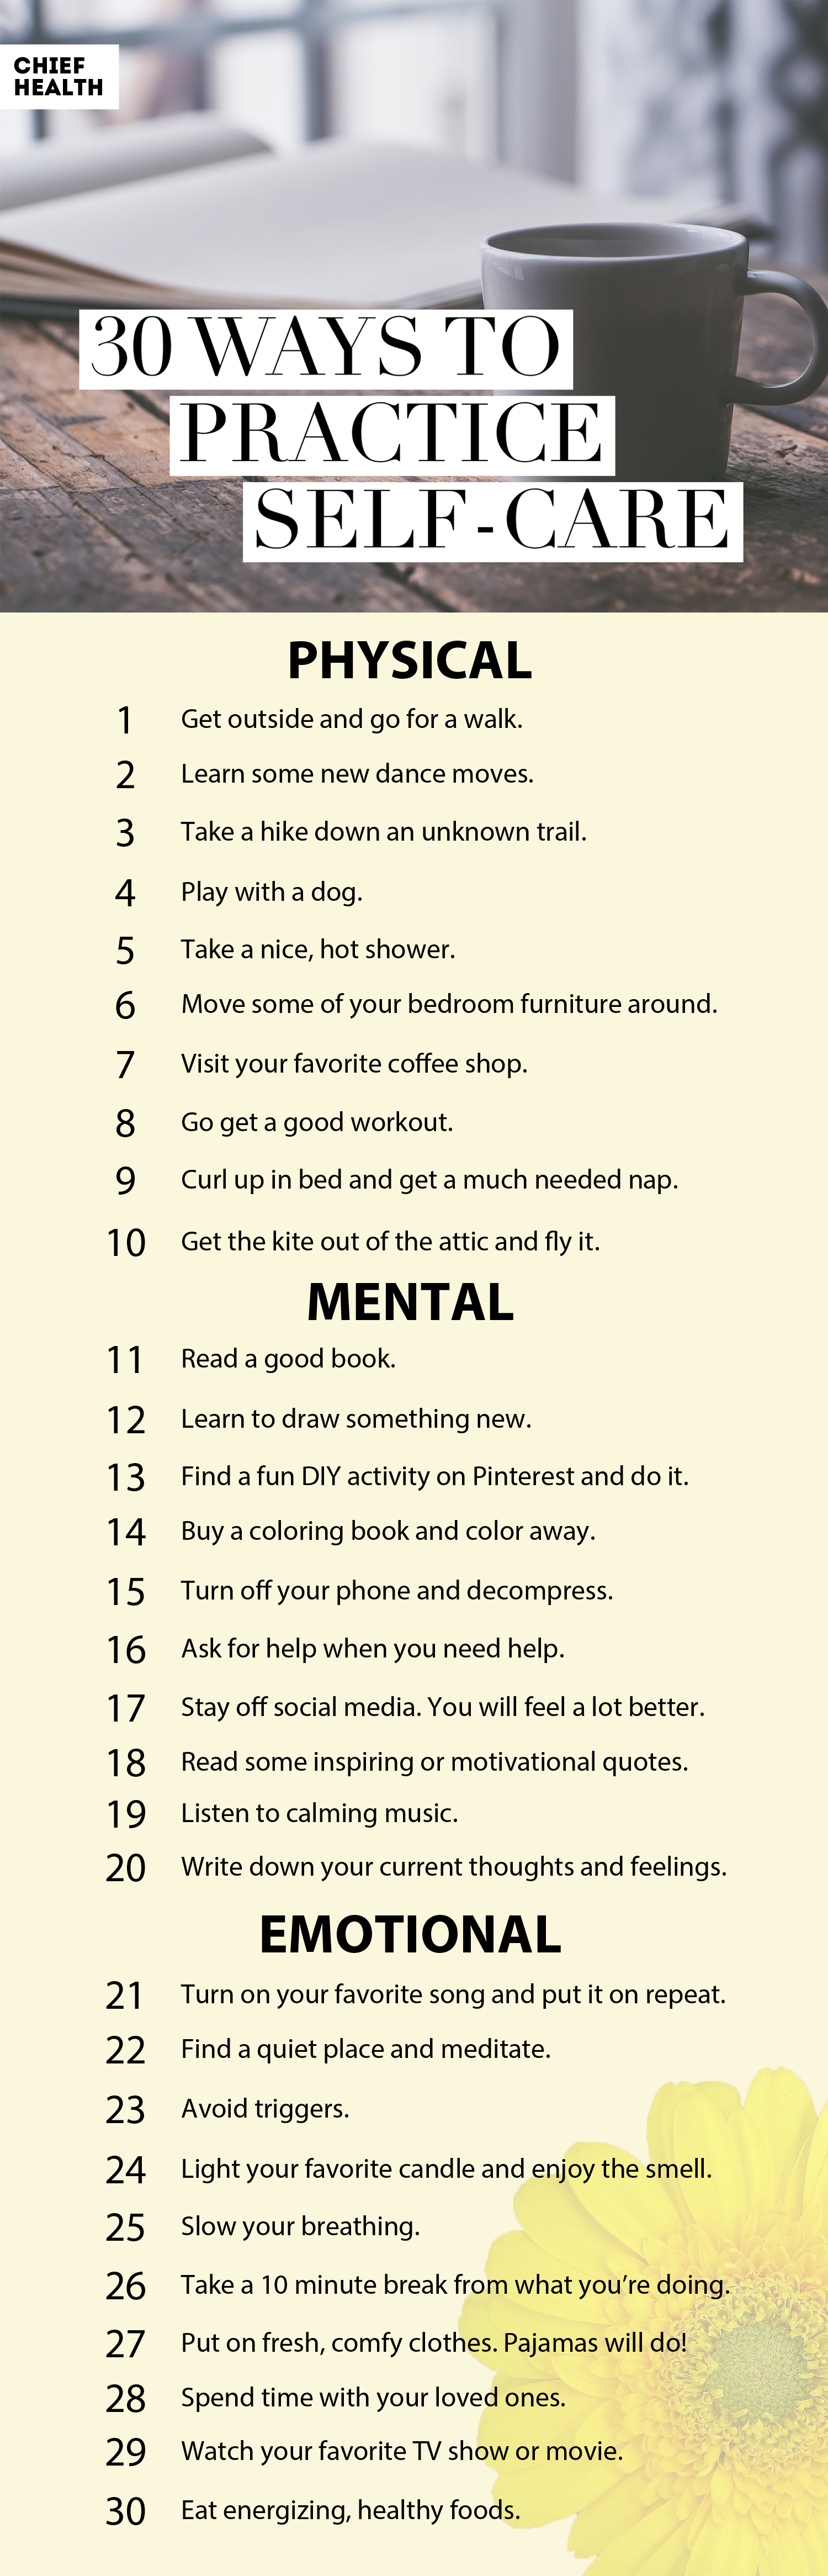 Practicing self-care on a daily basis can provide many benefits such as, preventing illness, managing disease, and making informed decisions about your health. Take good care of yourself and it'll help you take care of others.